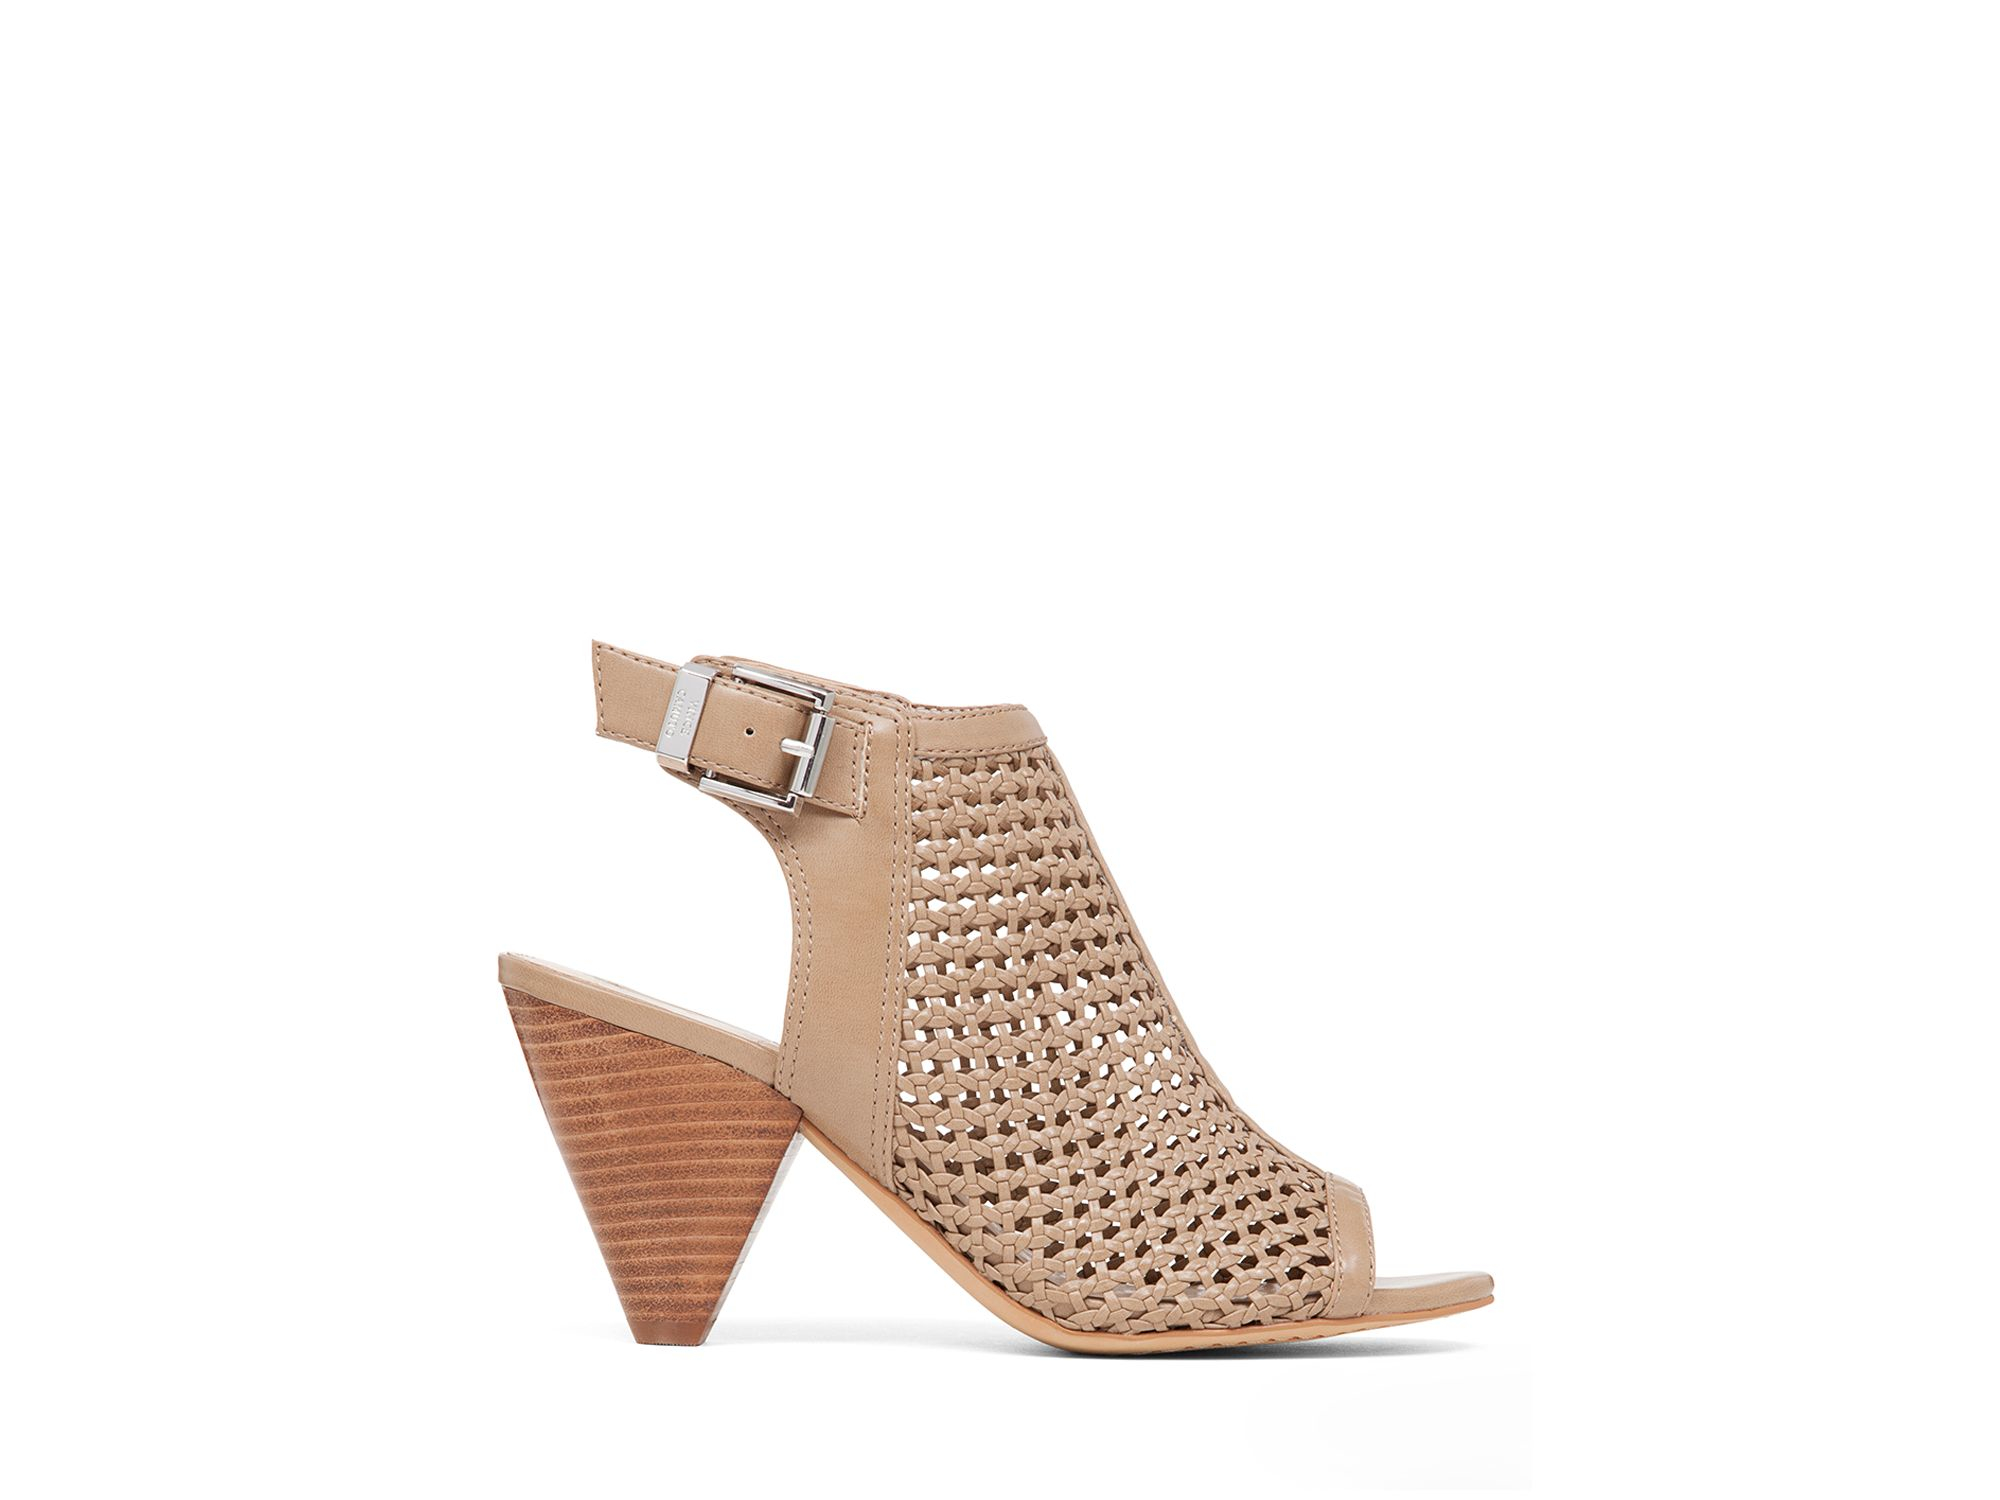 Vince Camuto Open Toe Booties - Emilia Perforated in Brown